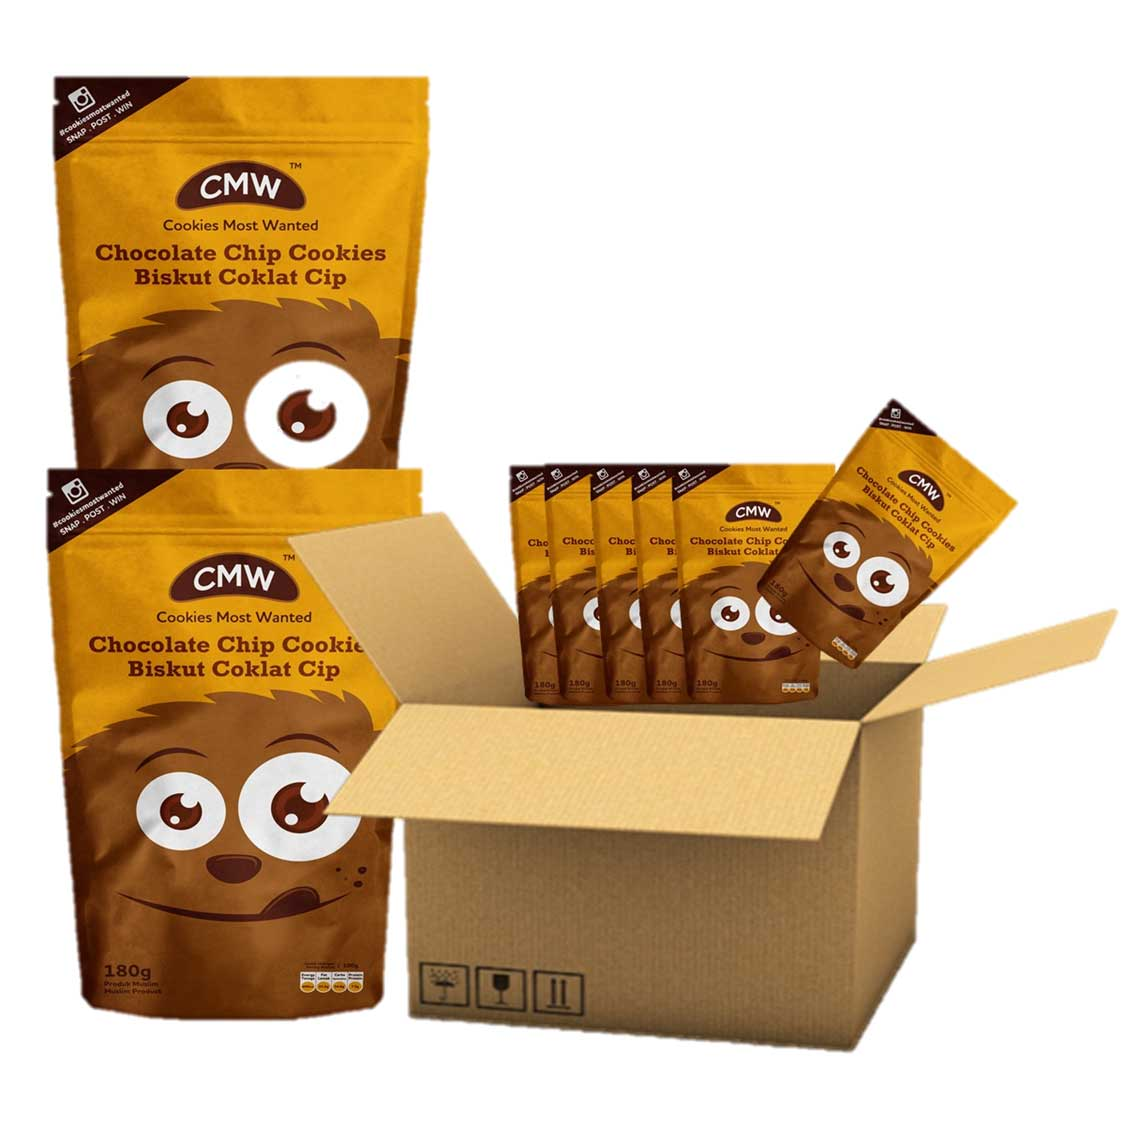 25 Pack CMW Chocolate Chip Cookies (1 carton) (PROMOTION) RM300.00